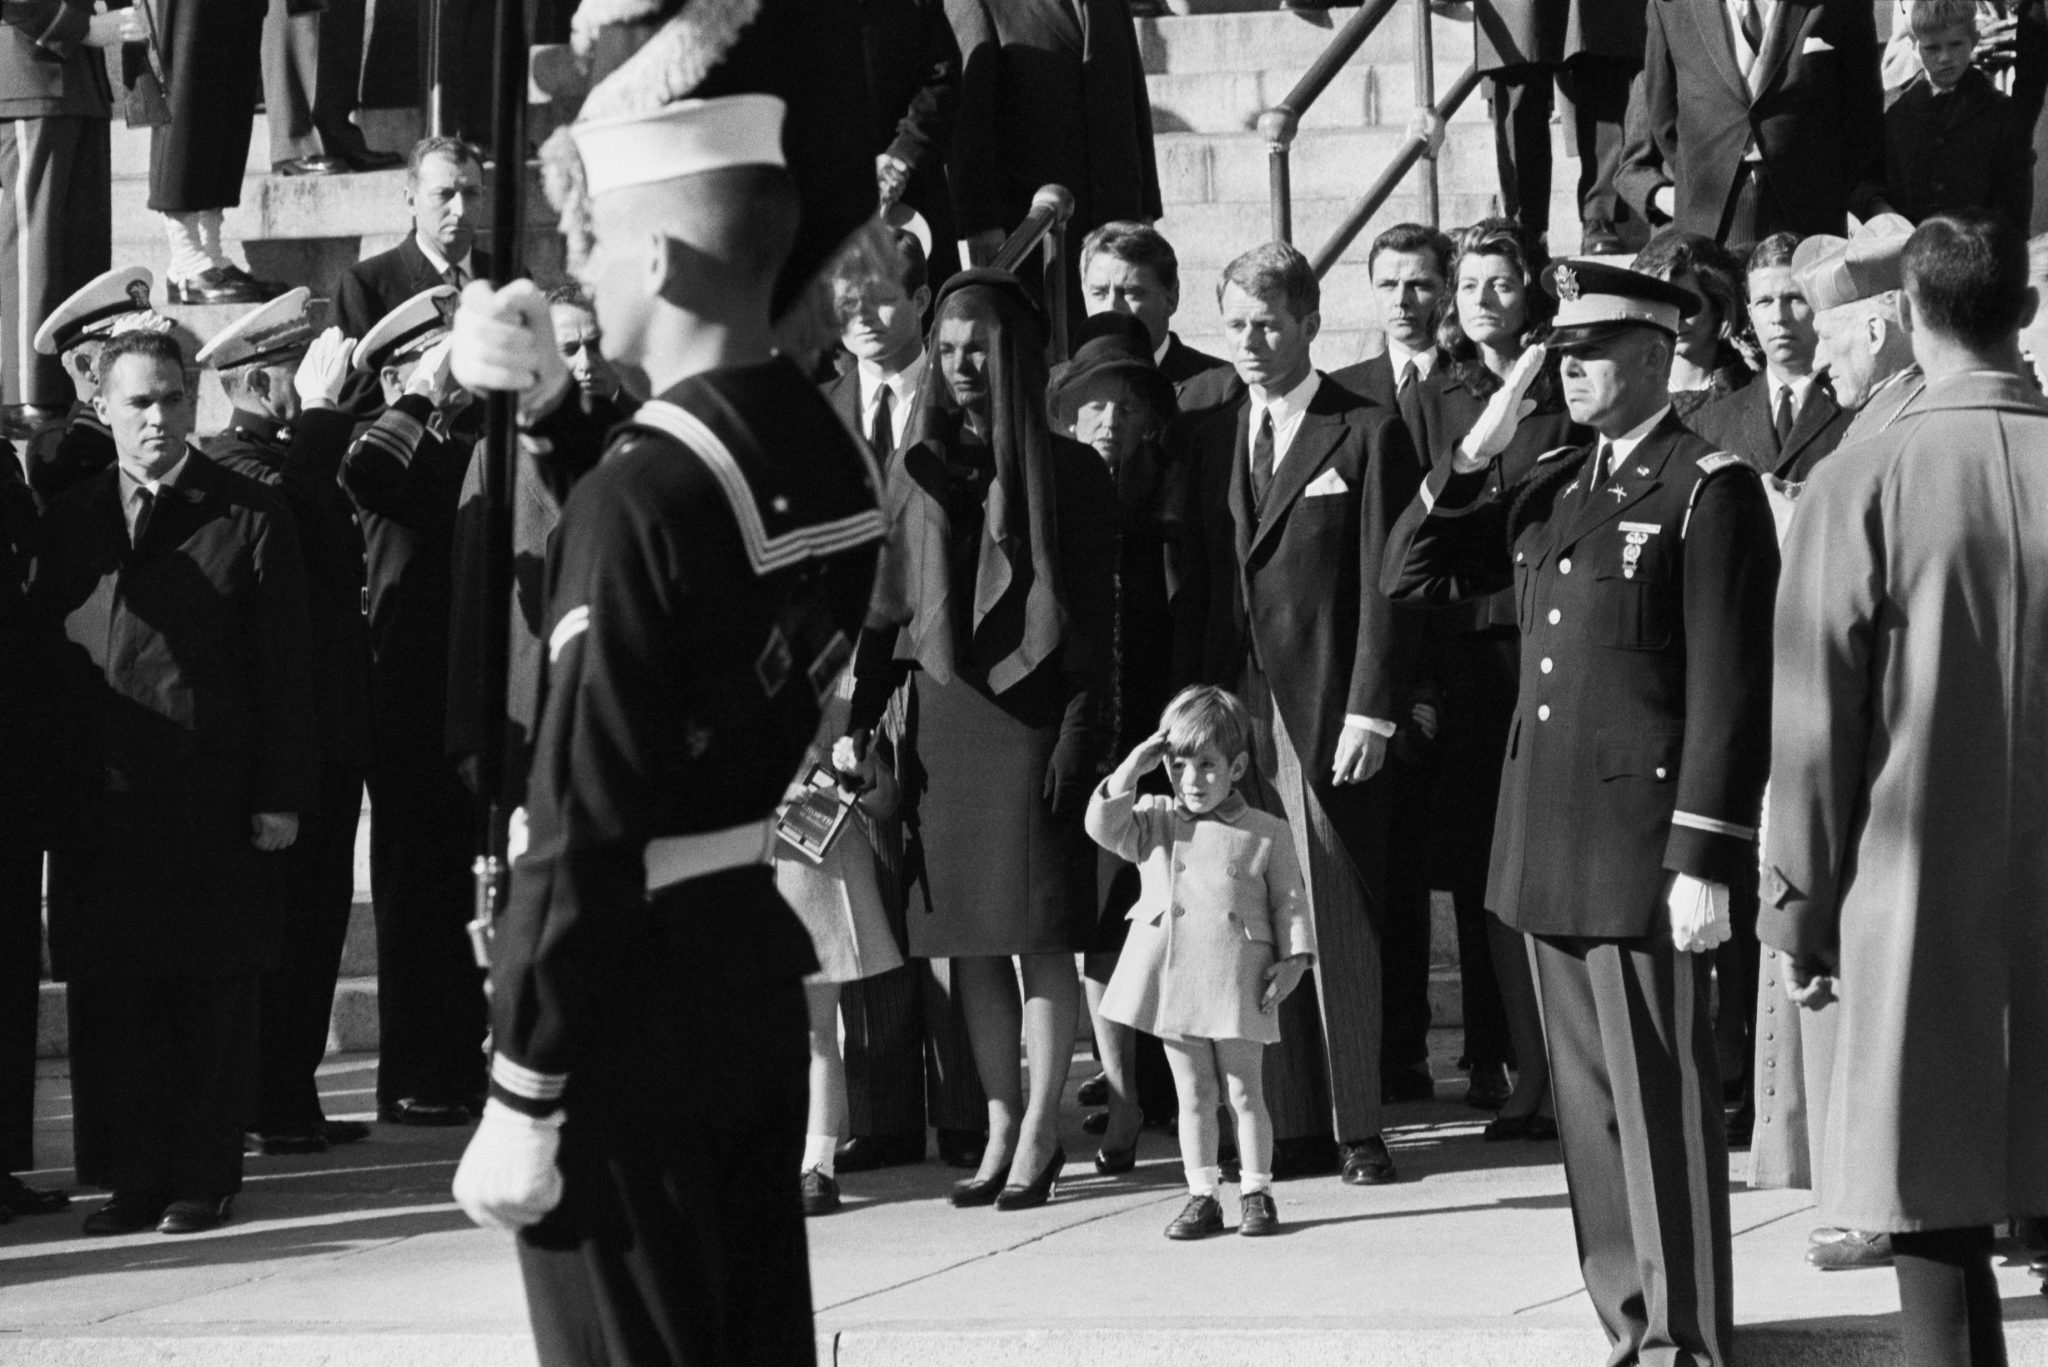 To mark the fortieth anniversary of John F. Kennedy's assassination, AMERICAN EXPERIENCE reprises The Kennedys, a dramatic portrait of America's most famous political family, airing Monday and Tuesday, November 17 and 18, at 9pm on PBS (check local listings). Here, John Kennedy Jr., age 3, salutes as his father's casket is carried from St. Matthew's Cathedral, Washington, DC; November 25, 1963. CREDIT: © Bettmann/Corbis USAGE: This image may be used in the direct promotion of AMERICAN EXPERIENCE. No other rights are granted. All rights are reserved.